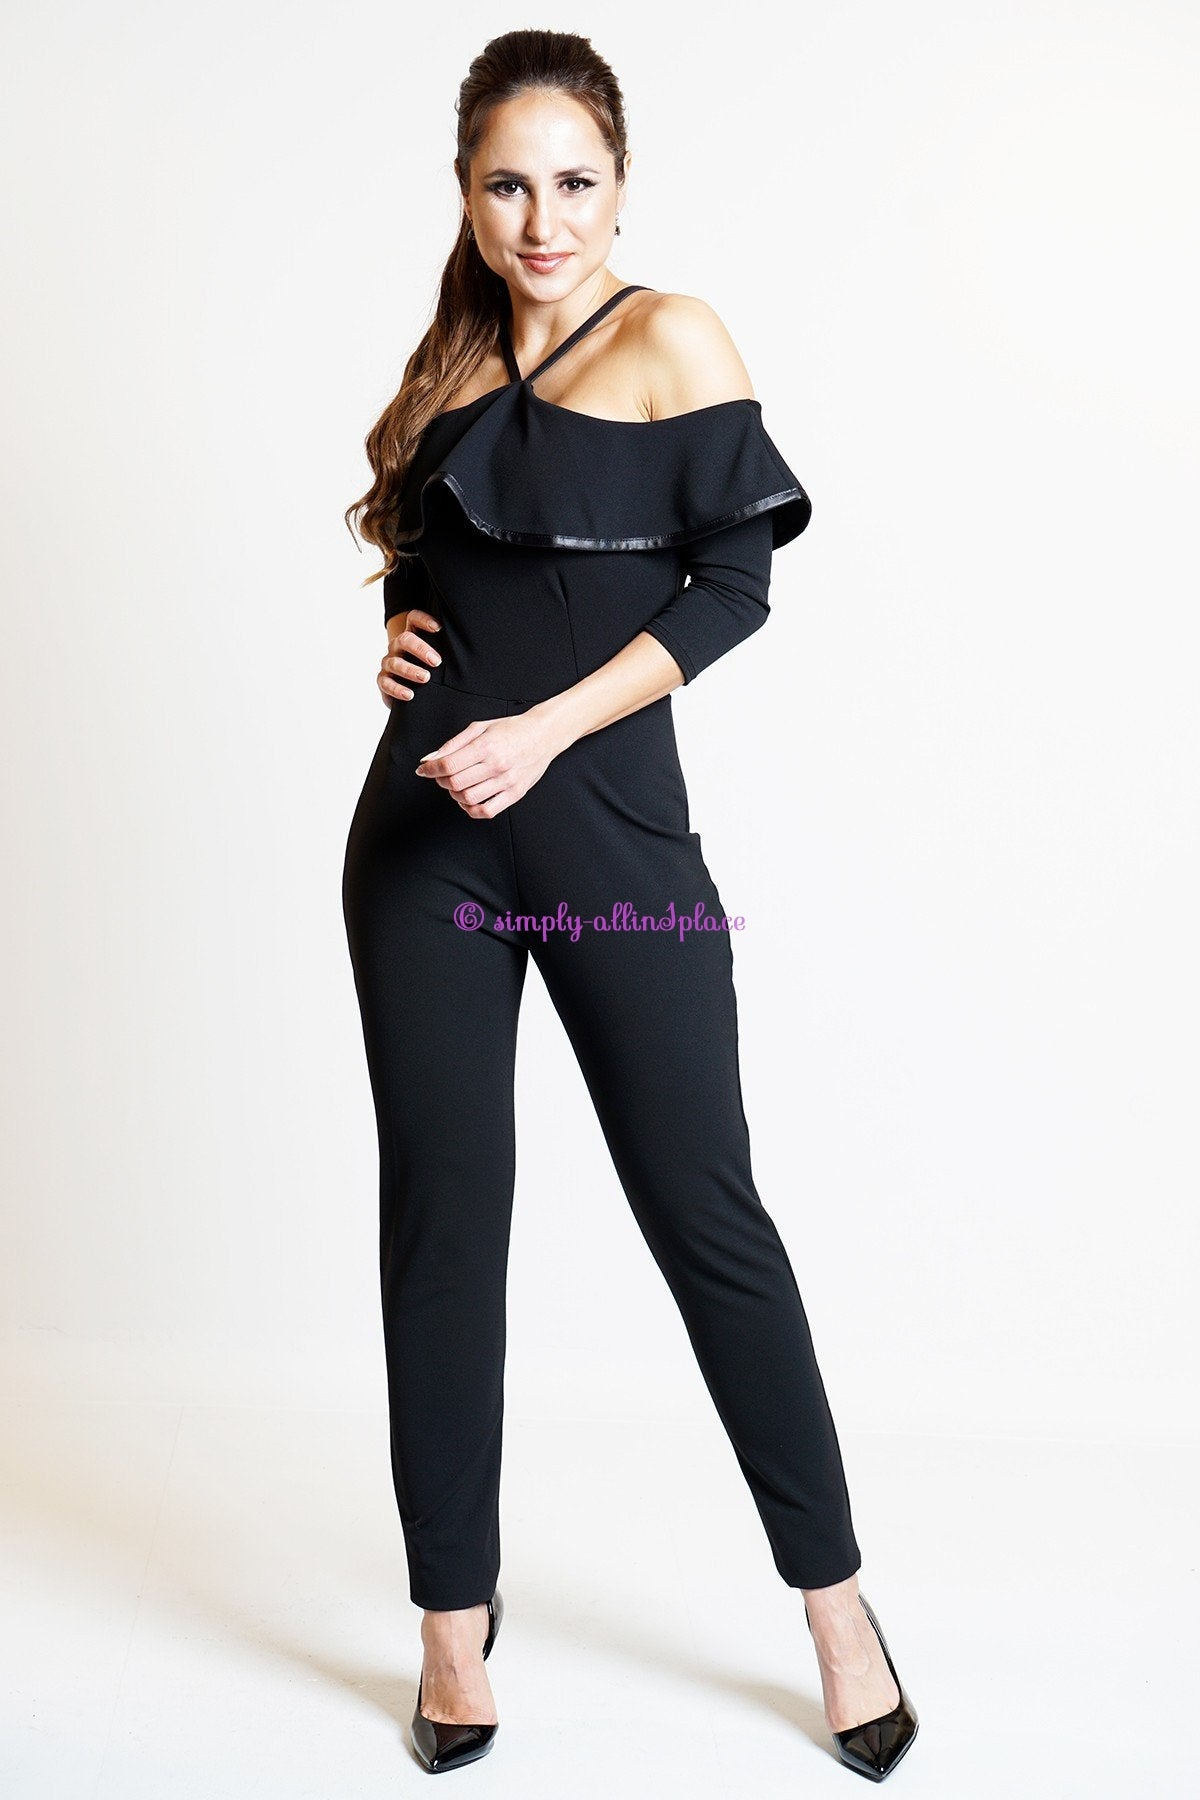 Lizette Satin Edge Frill Jumpsuit (Stock Item)